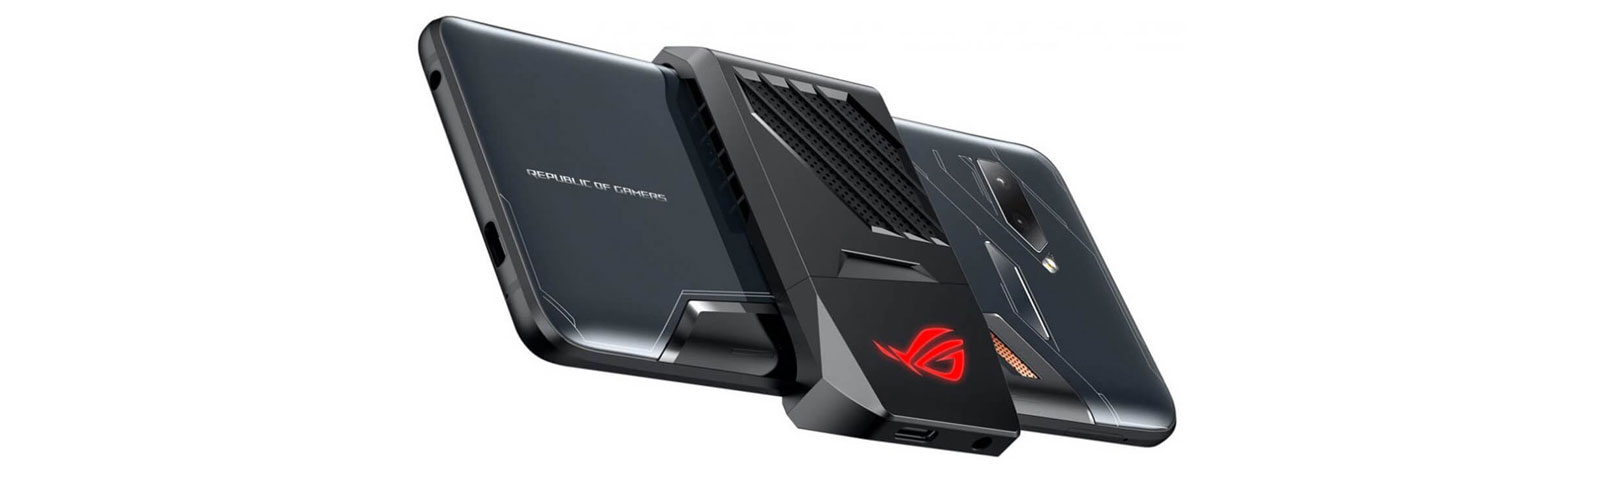 Asus unveils the ROG Phone II - a real gaming smartphone